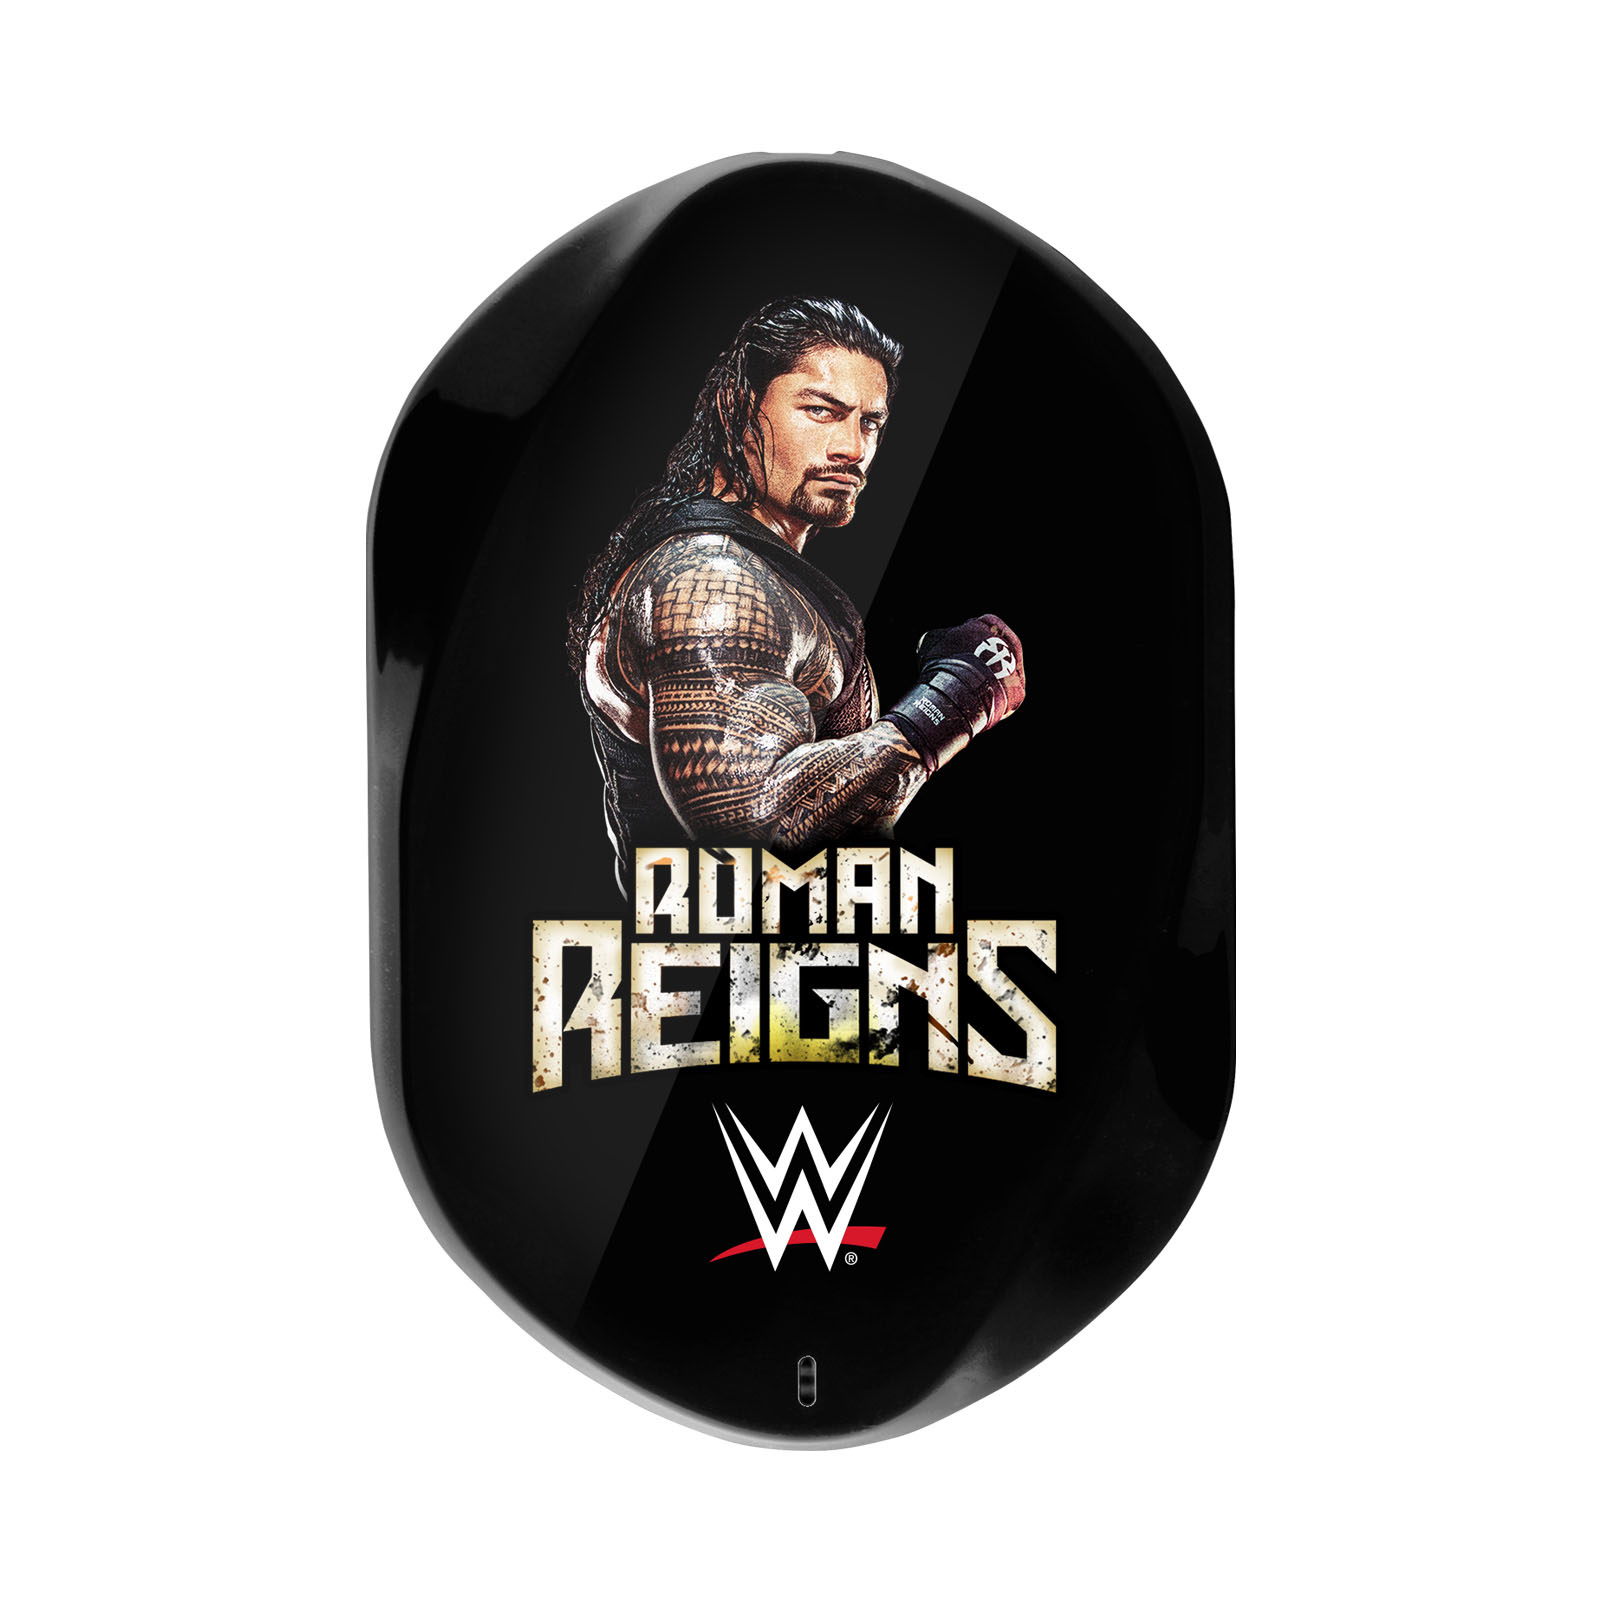 OFFICIAL-WWE-SUPERSTARS-IMAGE-BLACK-QI-FAST-WIRELESS-CHARGER thumbnail 15